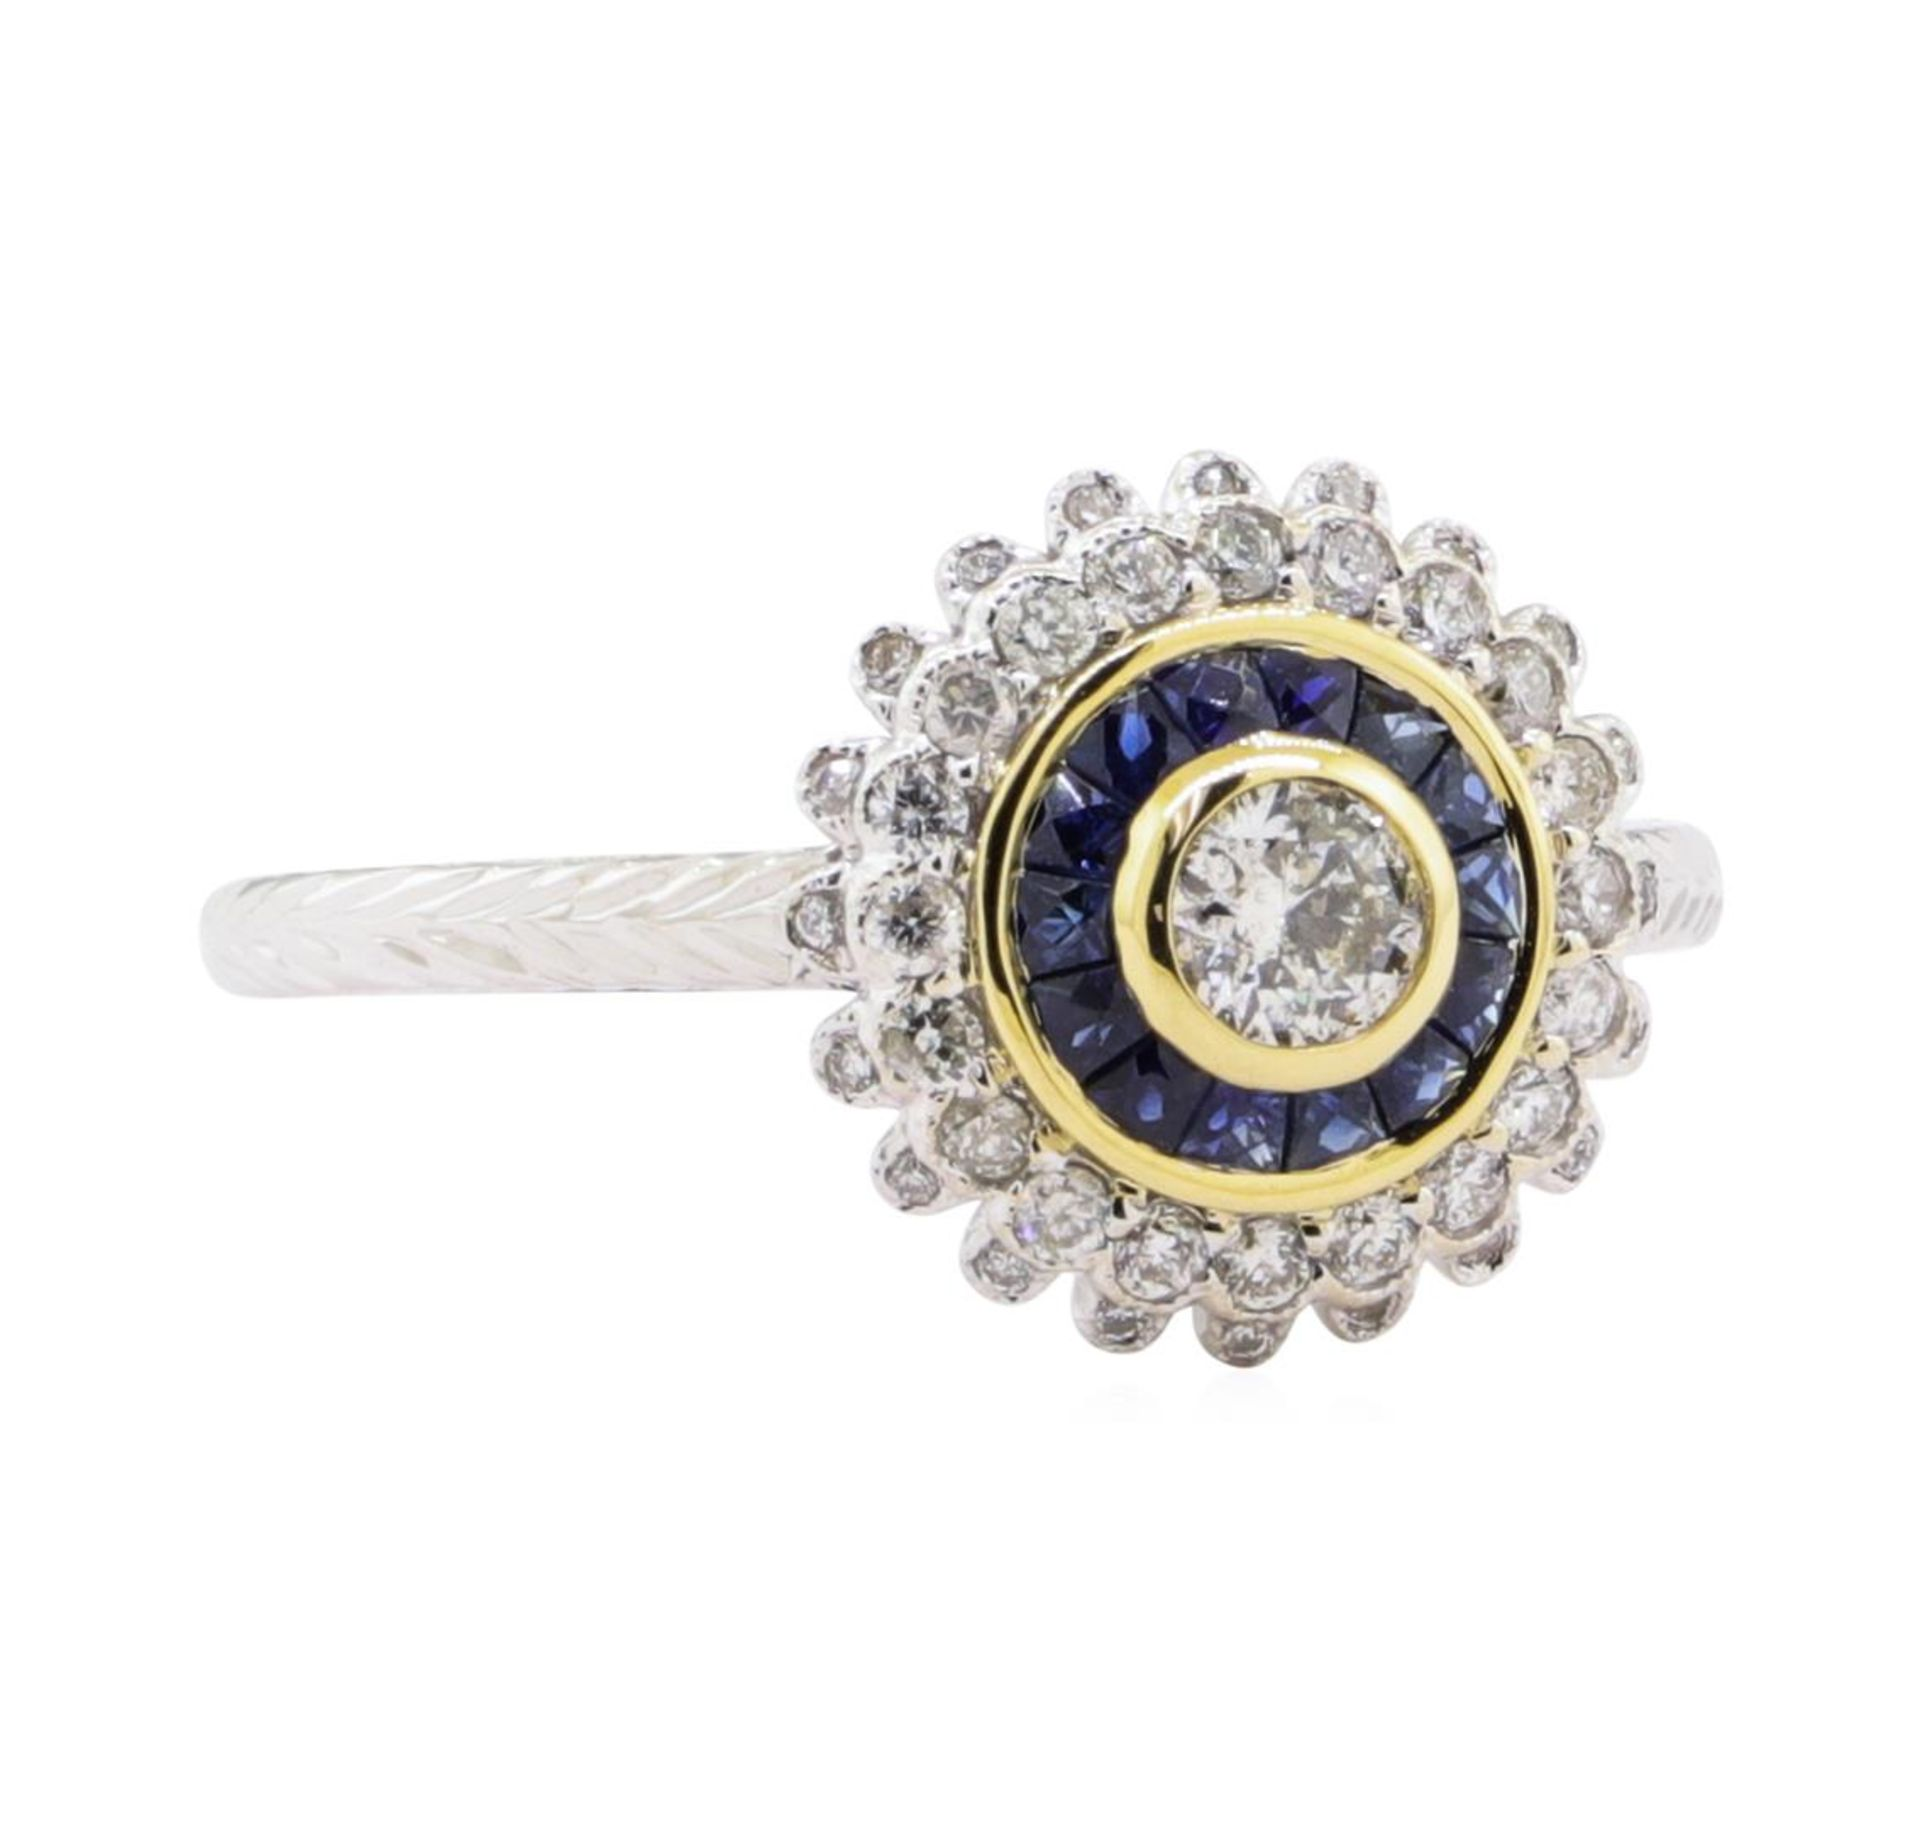 0.44ctw Diamond Ring - 18KT Two-Tone Gold